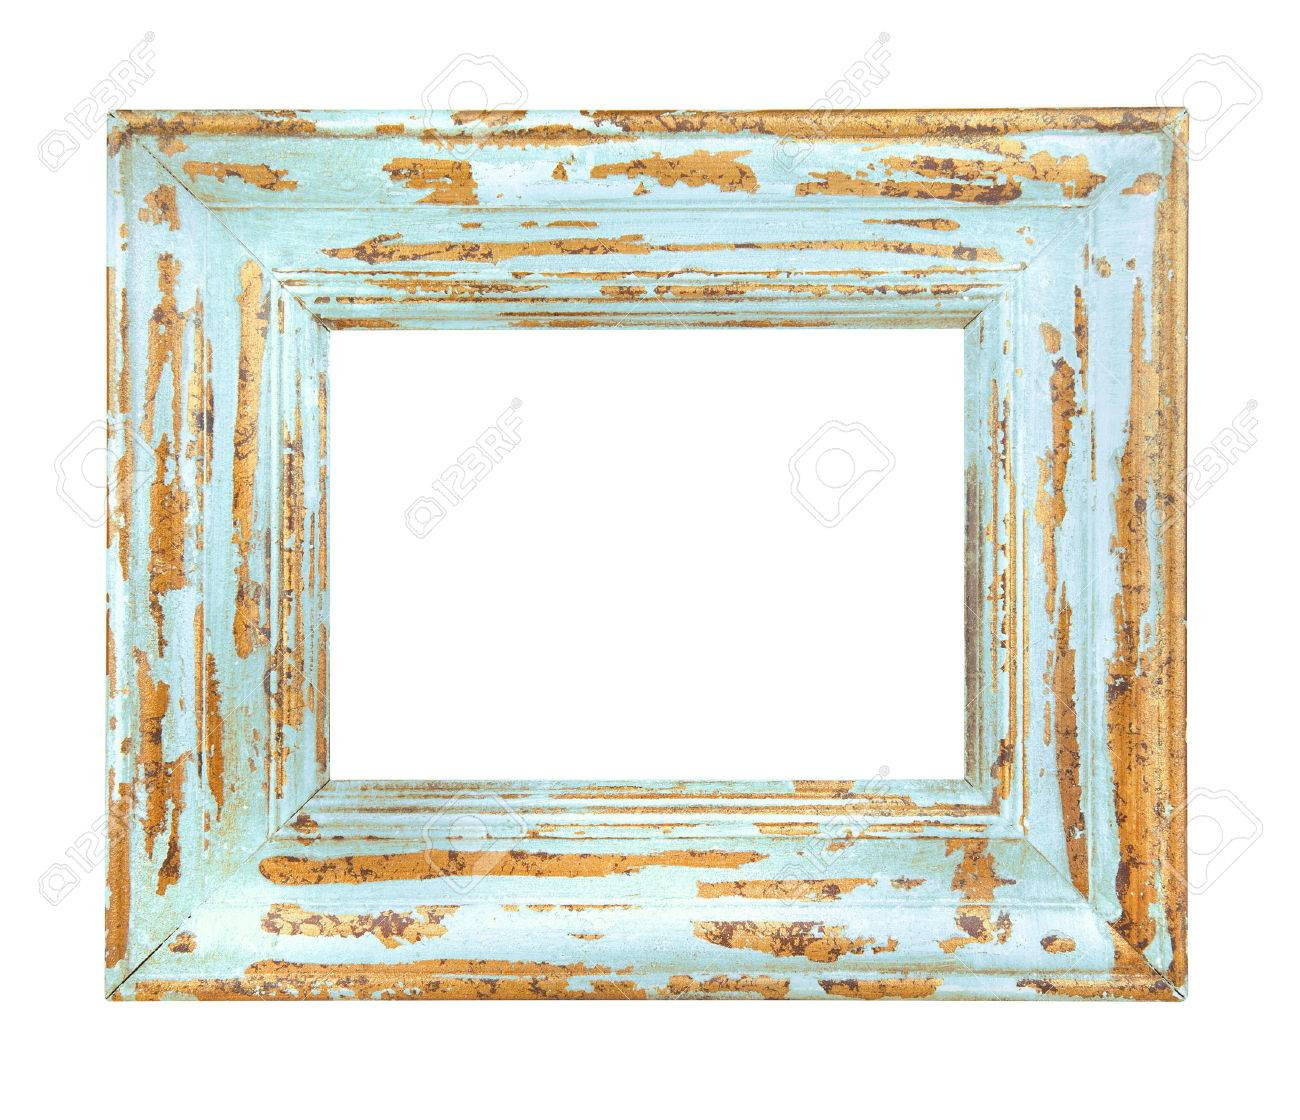 Vintage worn blue frame isolated on a white background stock photo vintage worn blue frame isolated on a white background stock photo 60651424 jeuxipadfo Gallery